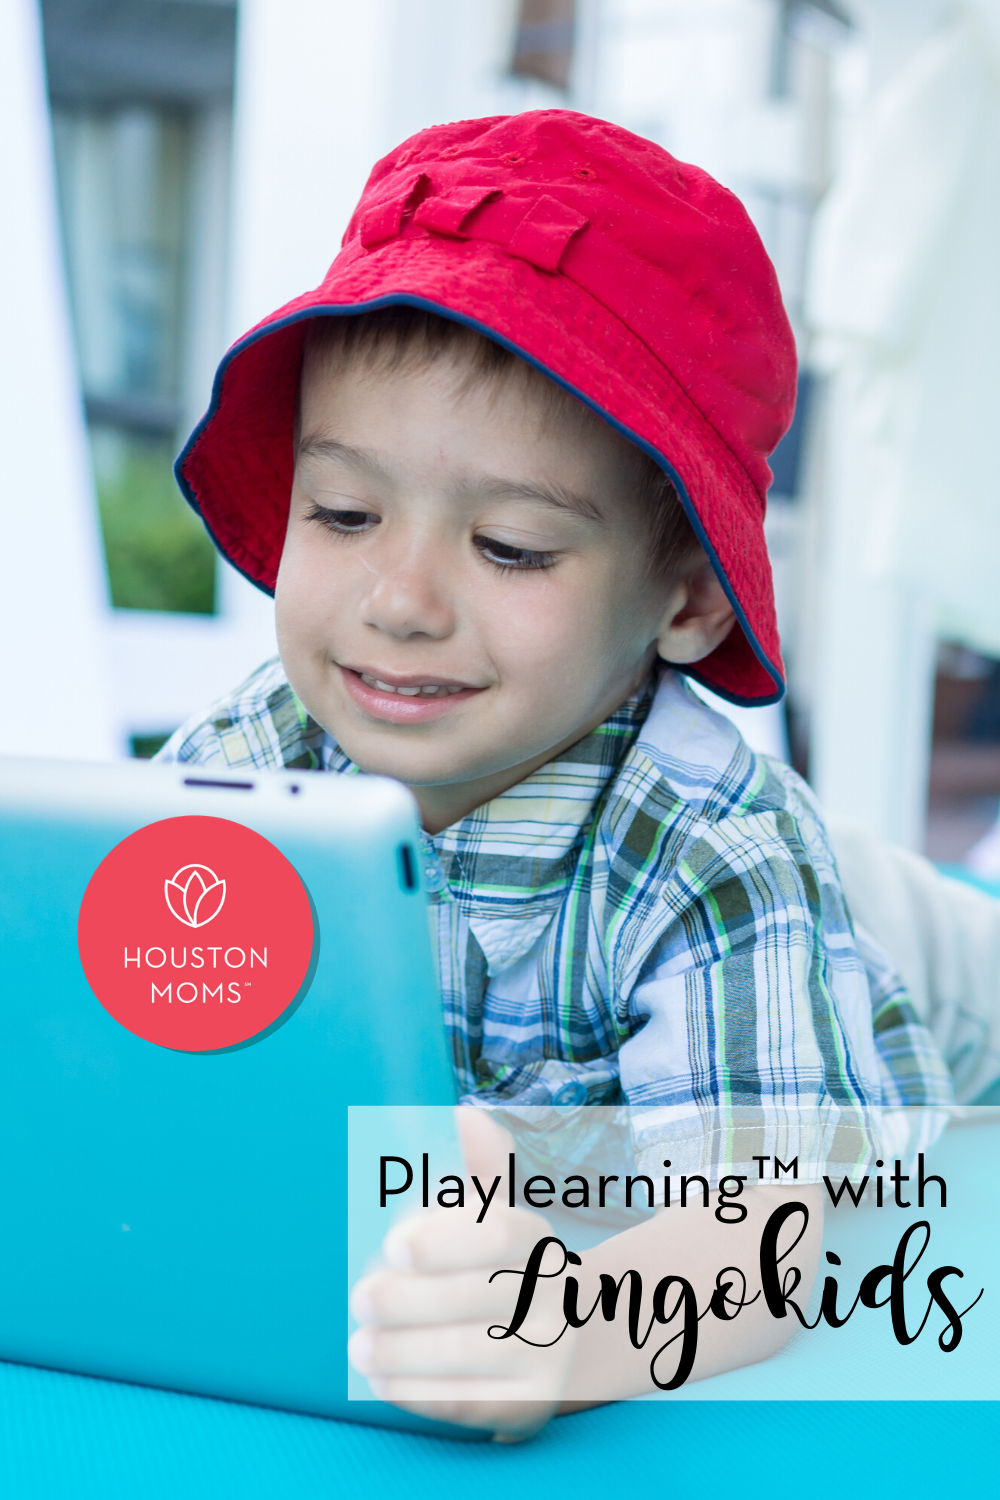 "Houston Moms ""Playlearning with Lingokids"" #houstonmoms #houstonmomsblog #momsaroundhouston"